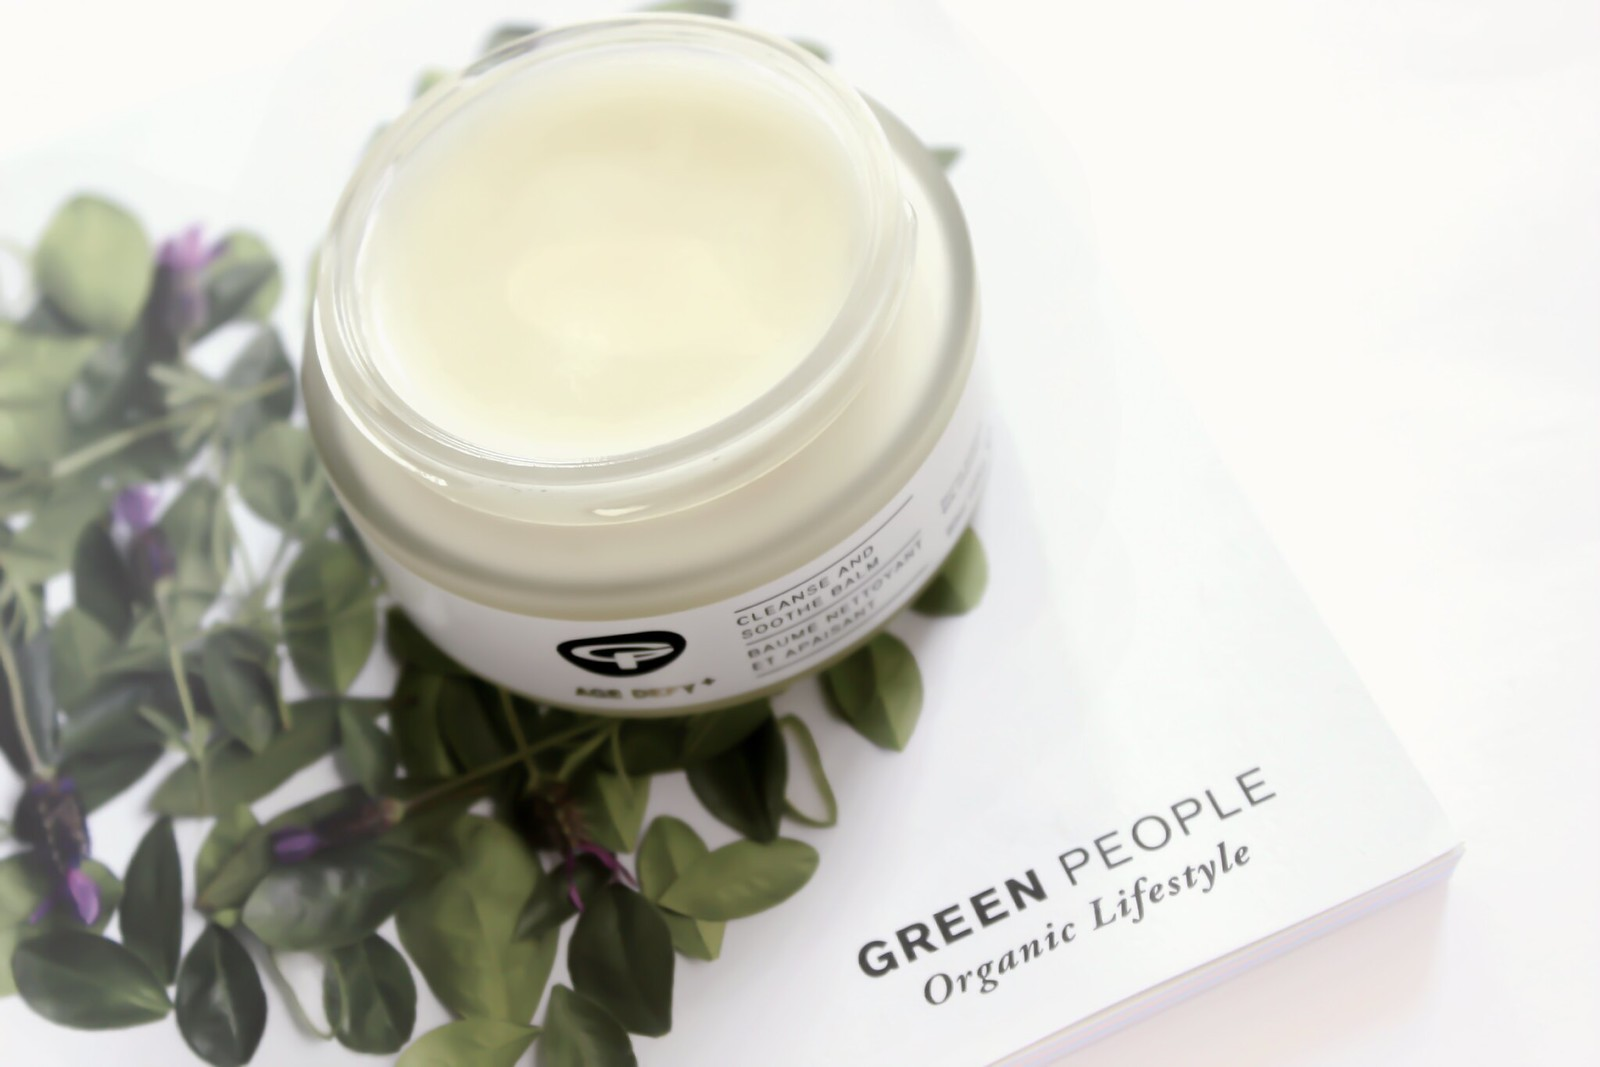 Green People Age Defy+ Cleanse and Soothe Balm